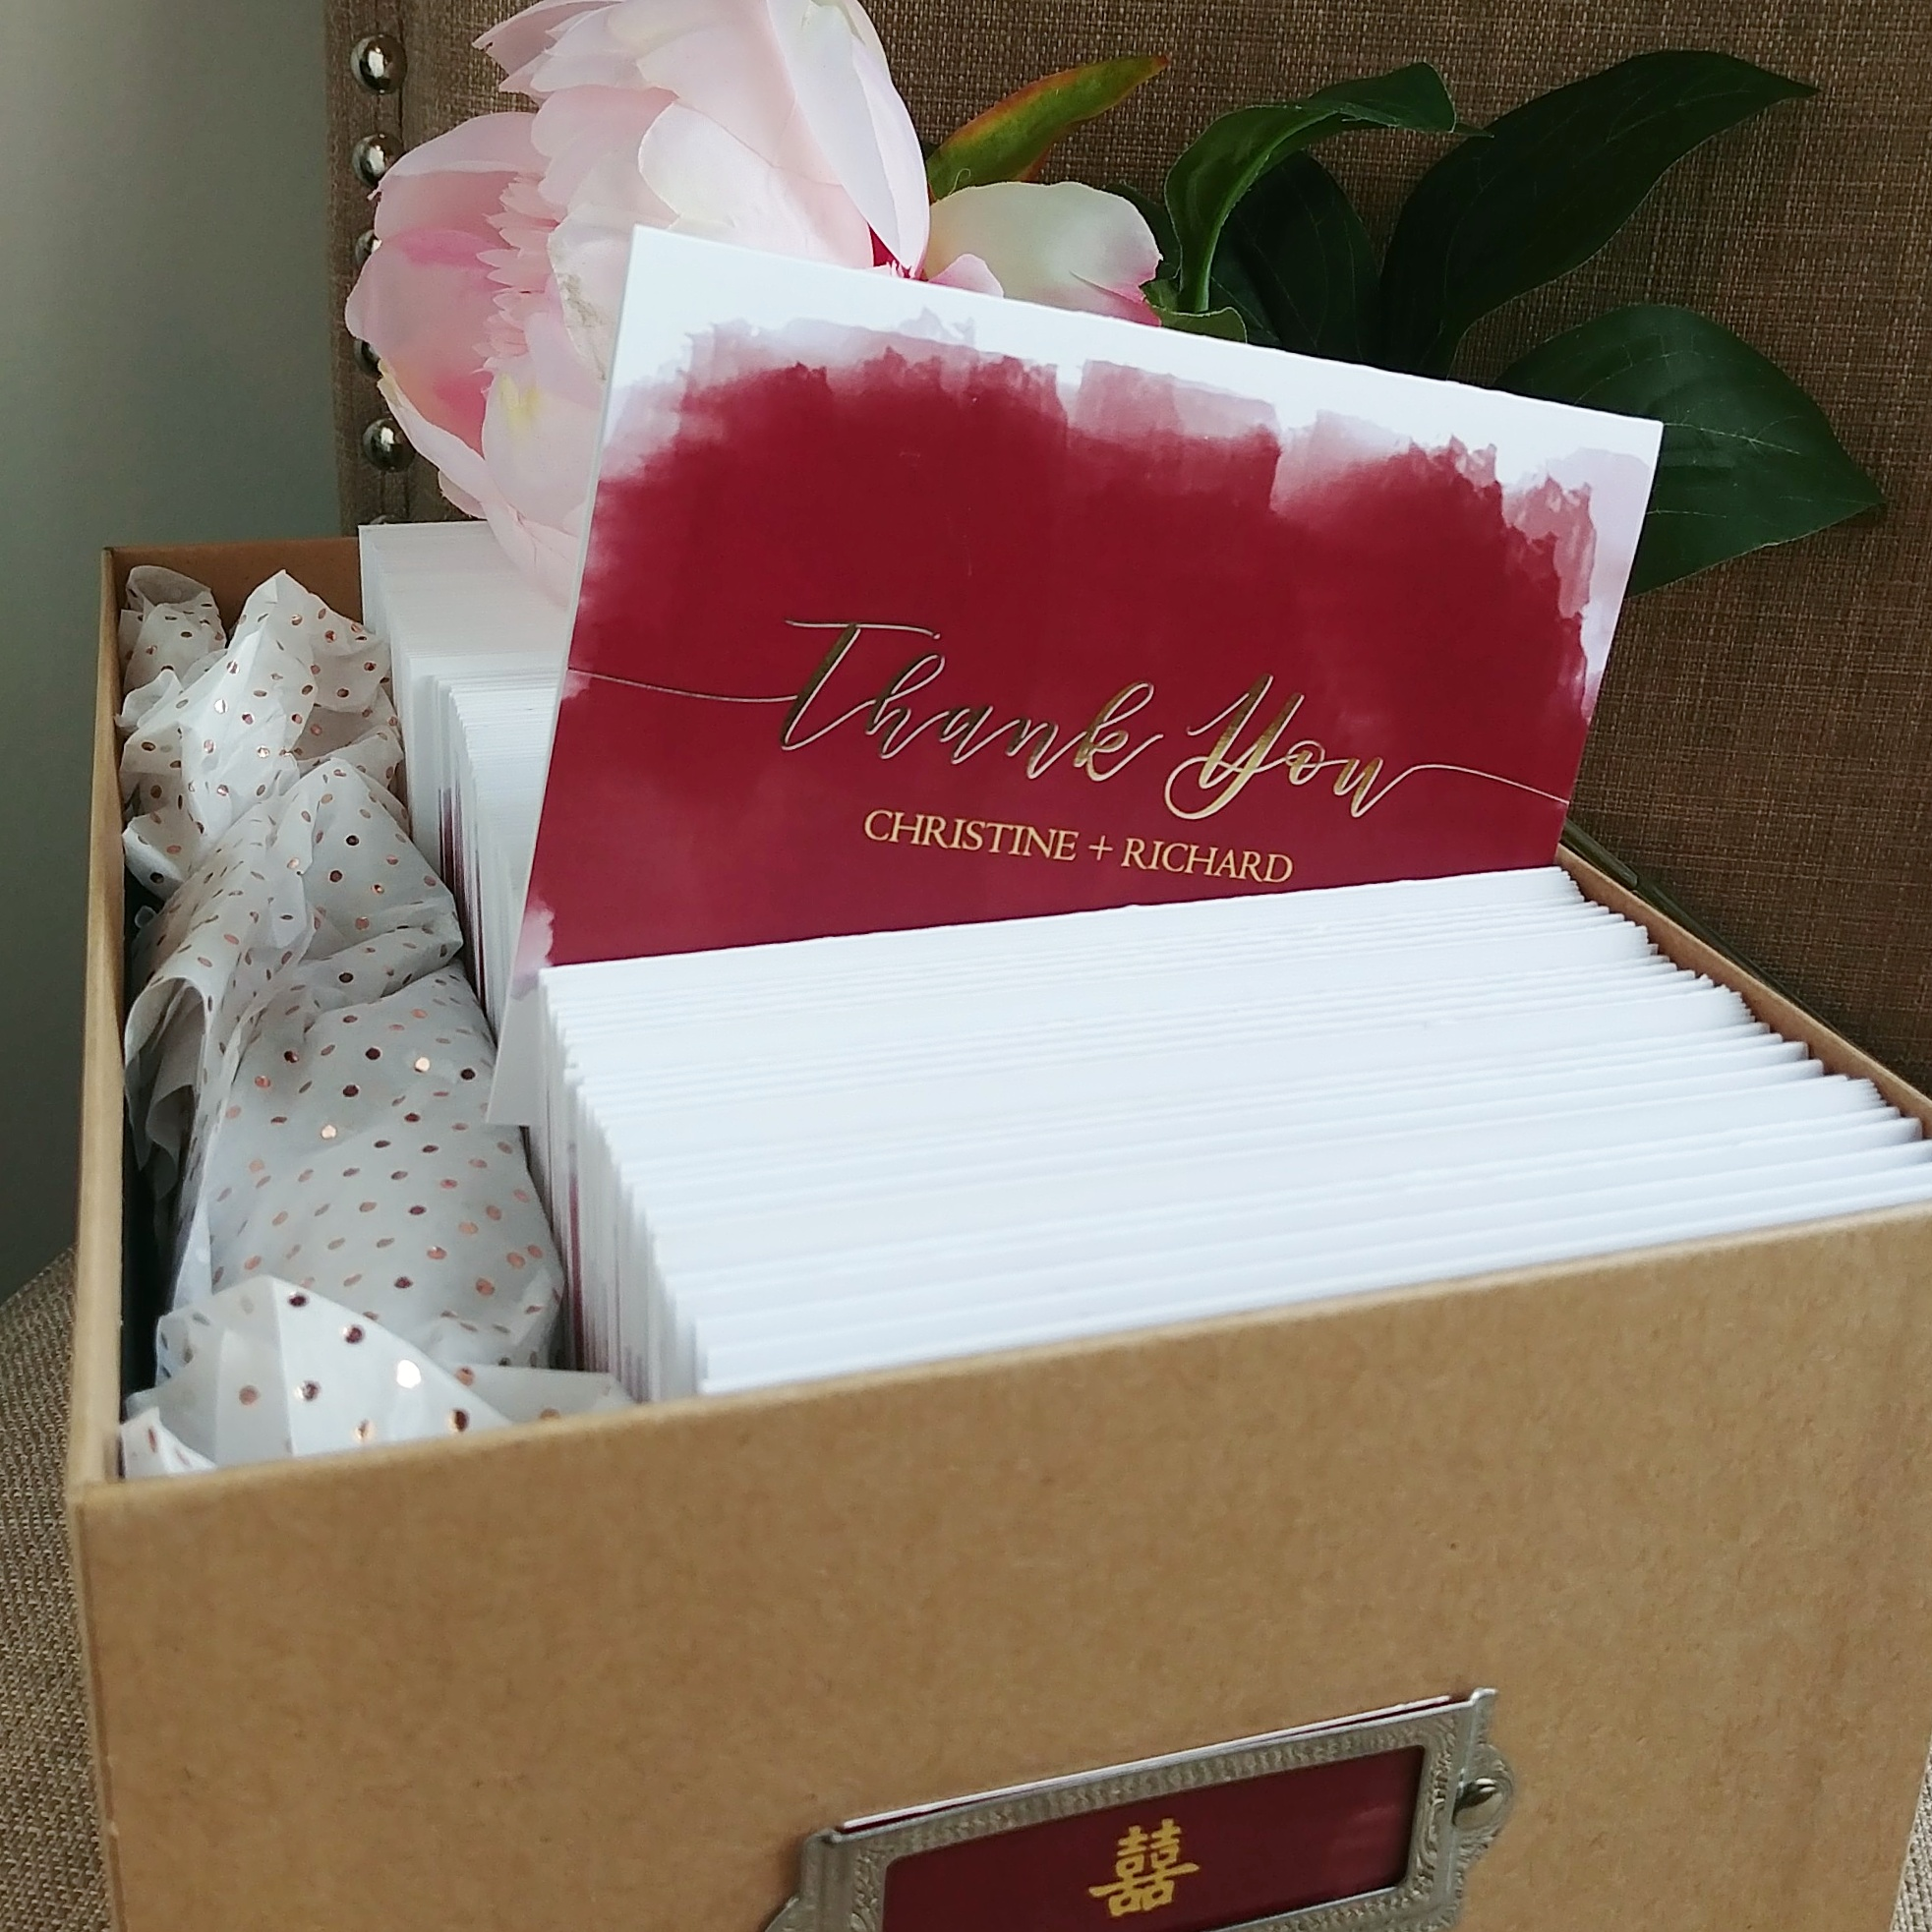 Burgundy Watercolor Gold Foil Wedding Thank You Cards by Cordial Punch Press